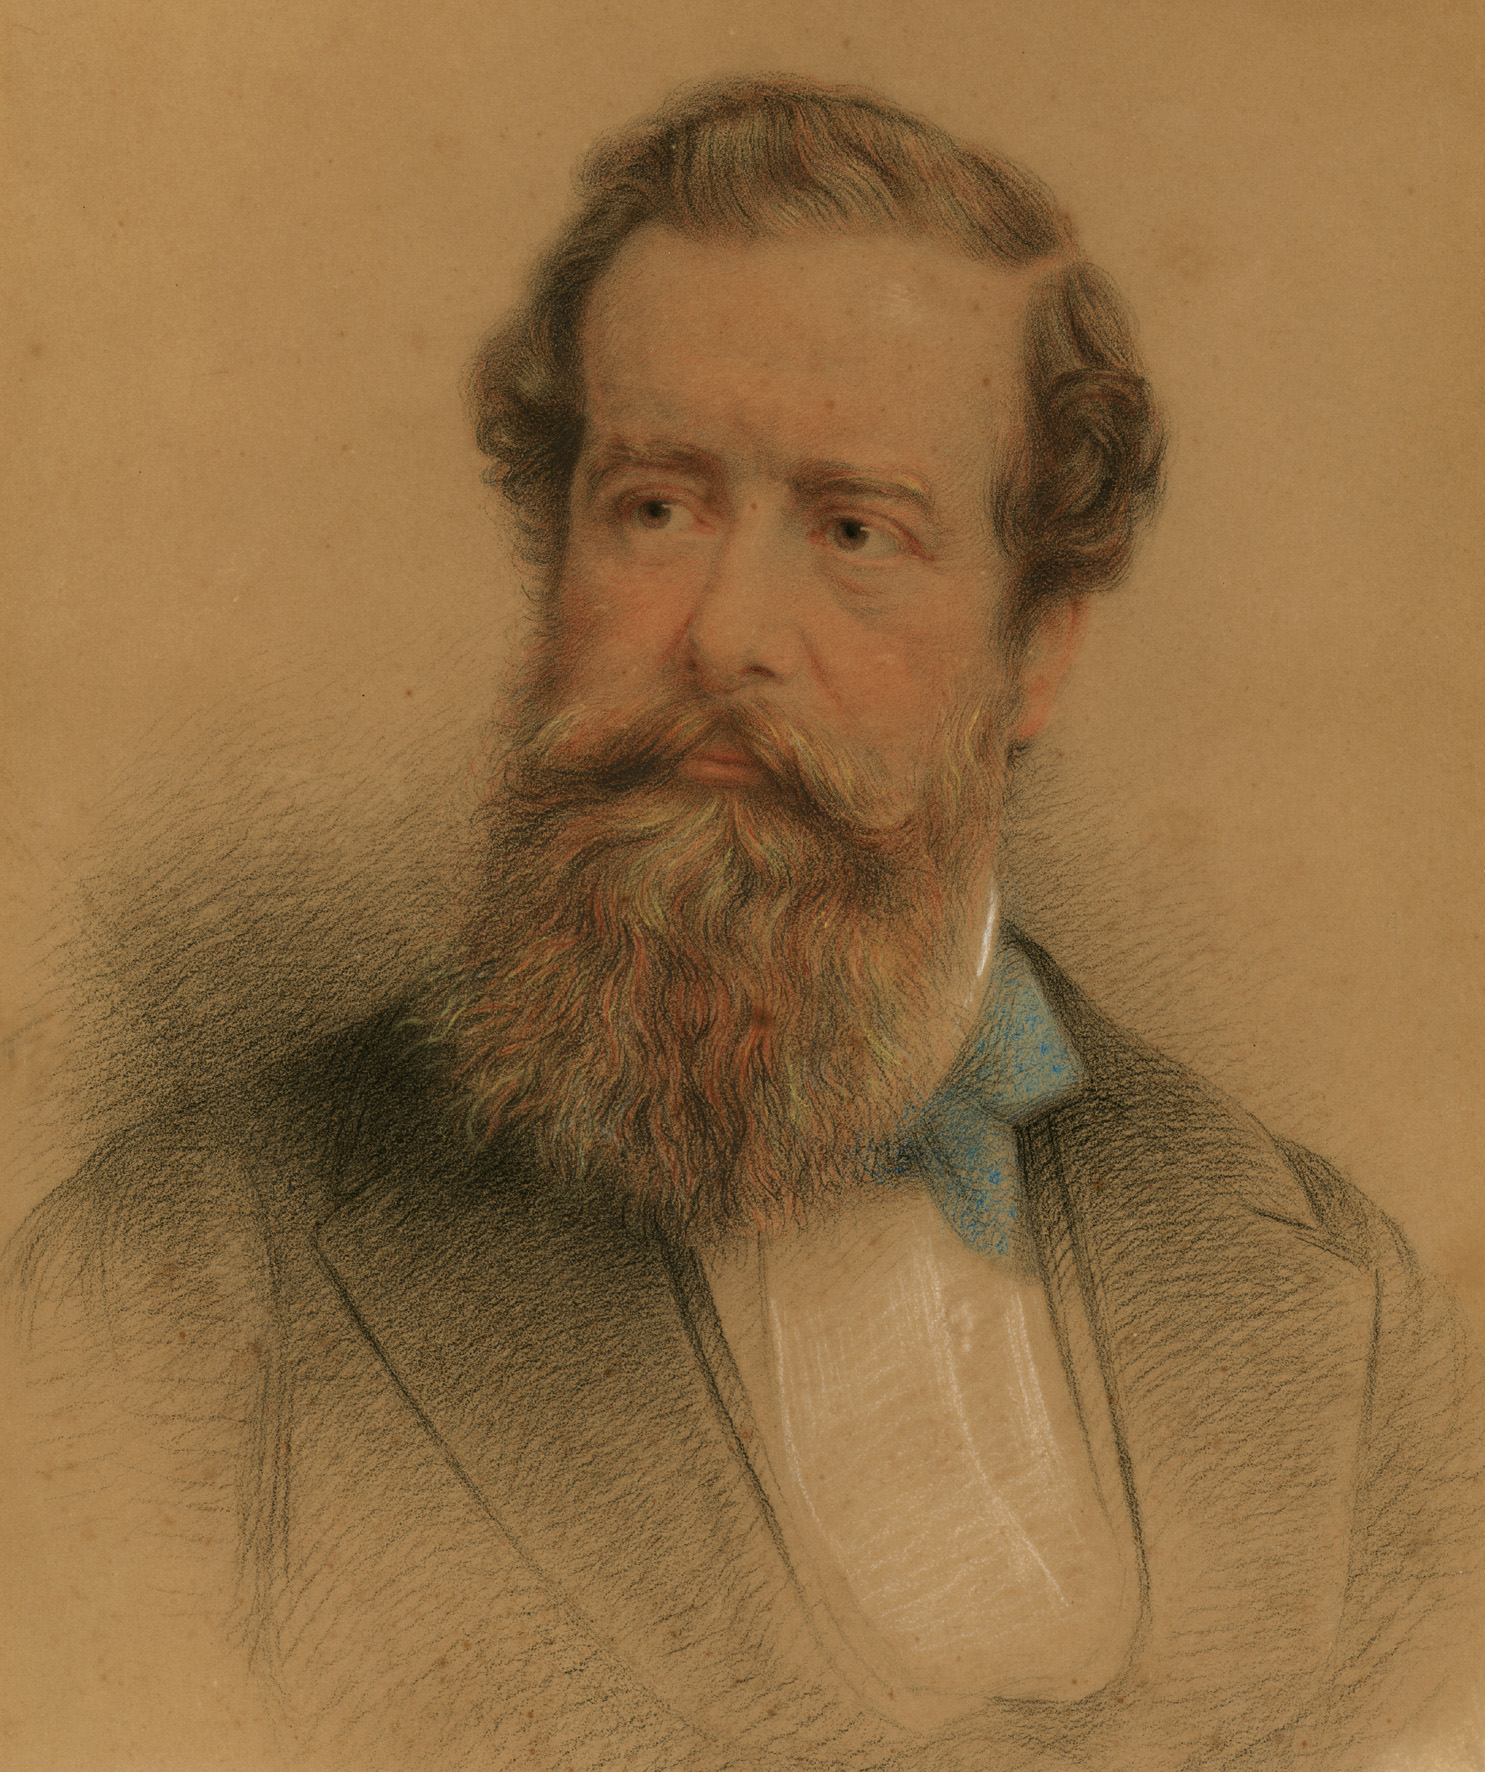 Portrait in crayon (colour) of Henry P.F. Pelham-Clinton, 5th Duke of Newcastle under Lyne c.1850s. The head and shoulders pastel portrait shows the 5th Duke wearing a dark suit, white shirt and blue neck tie, with a full beard and moustache.